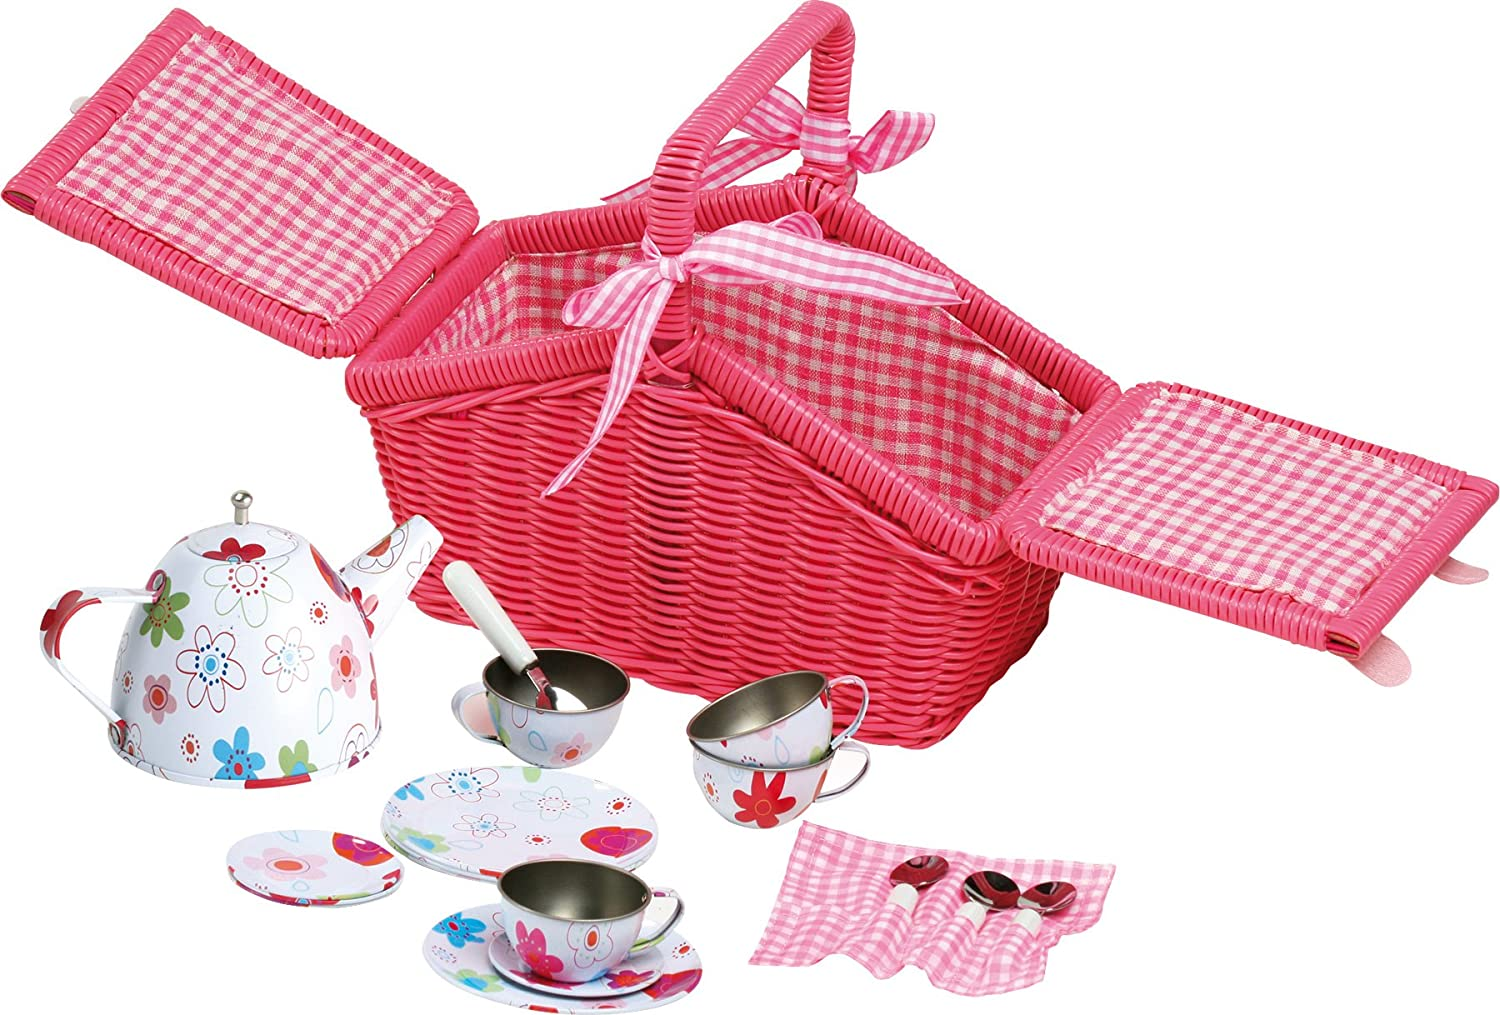 Credence Legler Picnic Basket Play Set with Pieces 18 High quality new